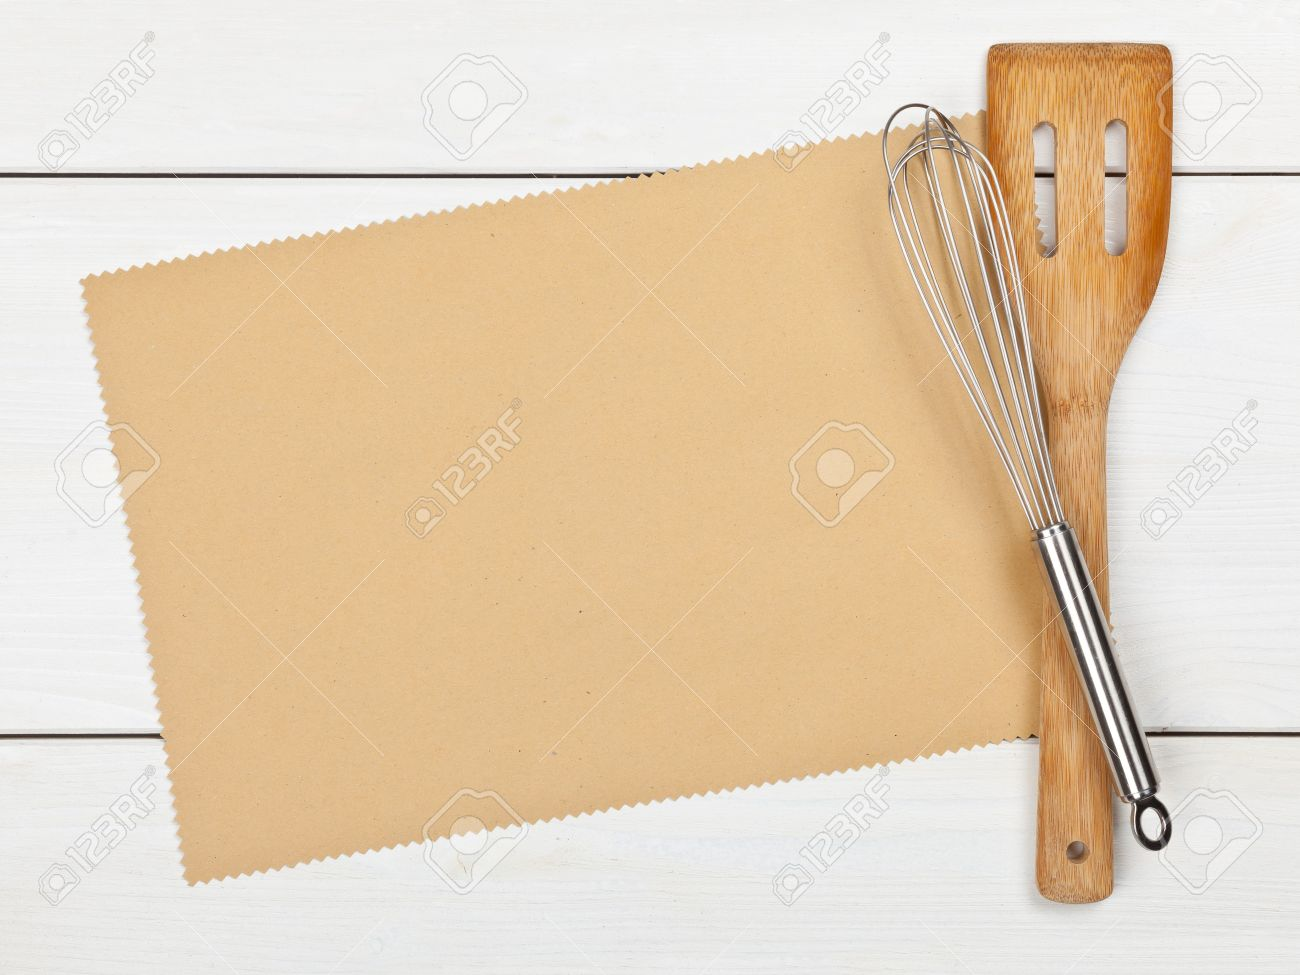 Empty paper for recipe with cooking utensils on kitchen table Standard-Bild - 19424100